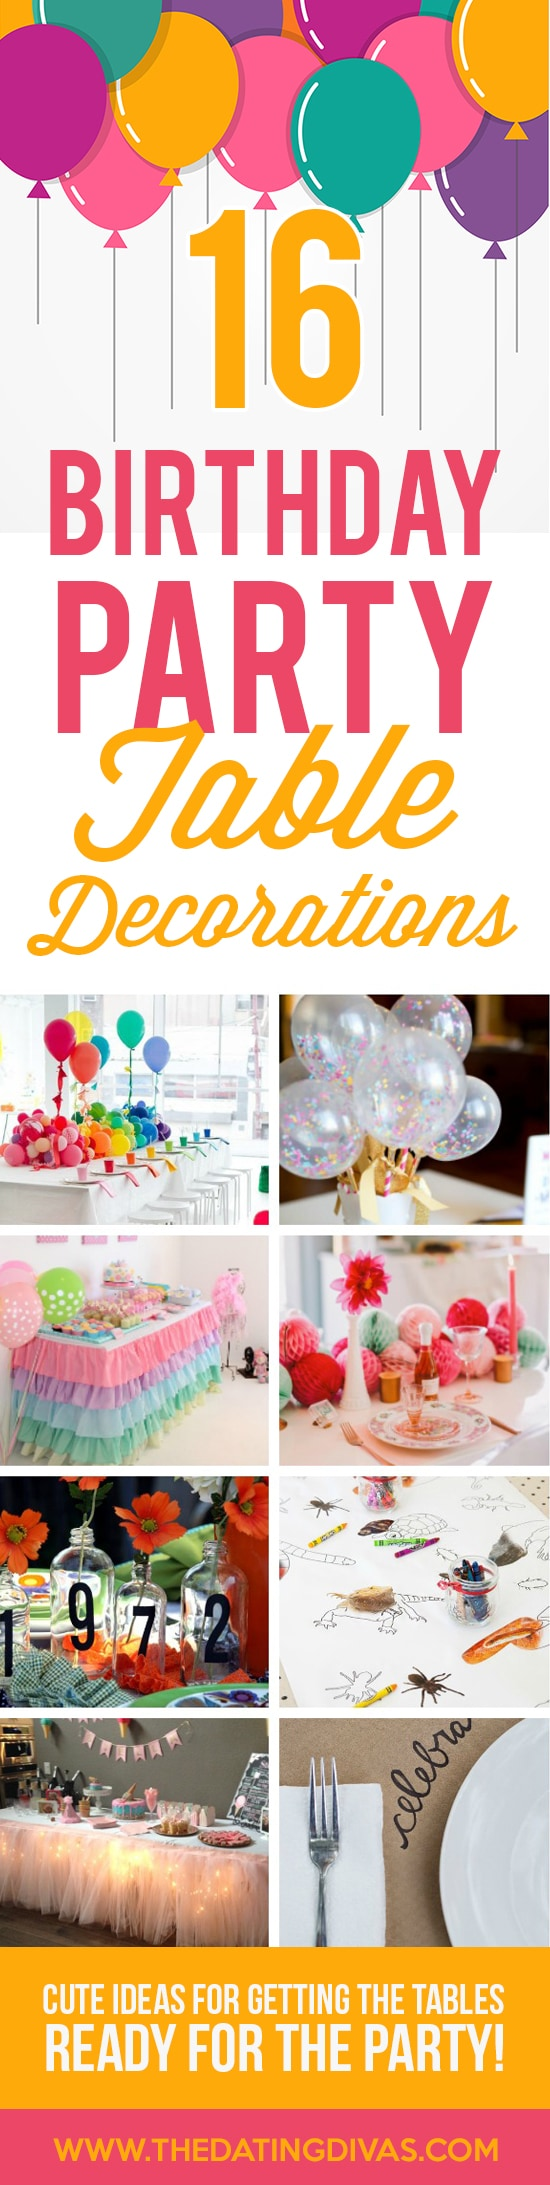 Cake and Balloons Birthday Banner Personalized Party Backdrop